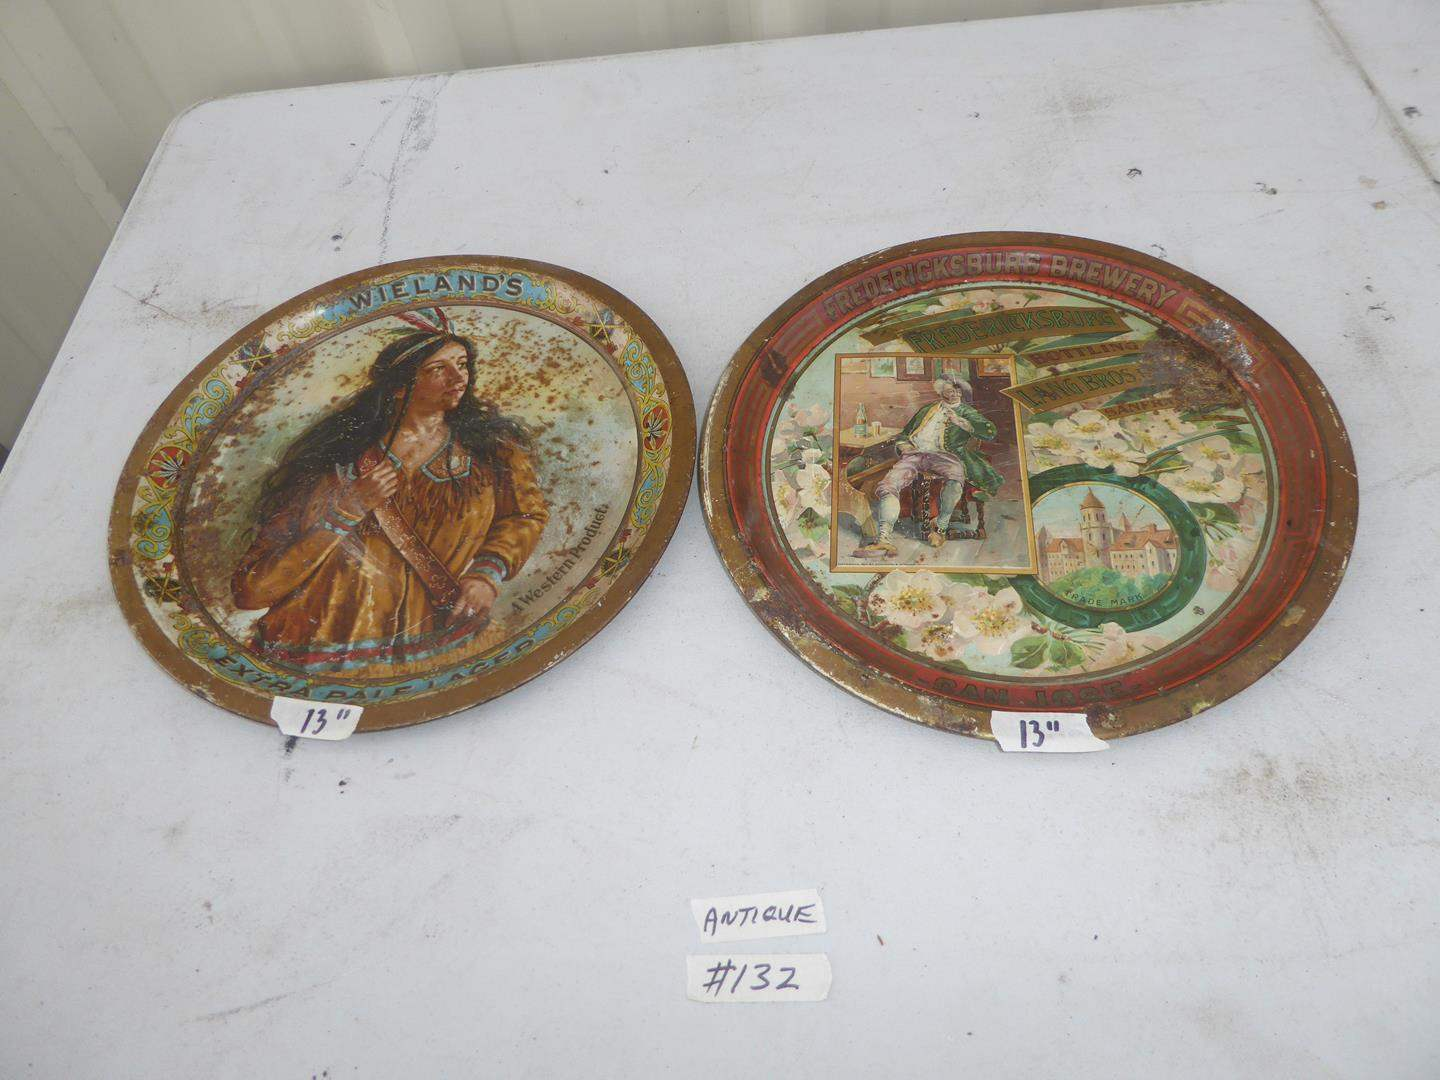 Lot # 132 - Antique Weiland's Extra Pale Lager Beer Advertising Tray & Antique Fredericksburg San Jose Advertising Beer Tray (main image)